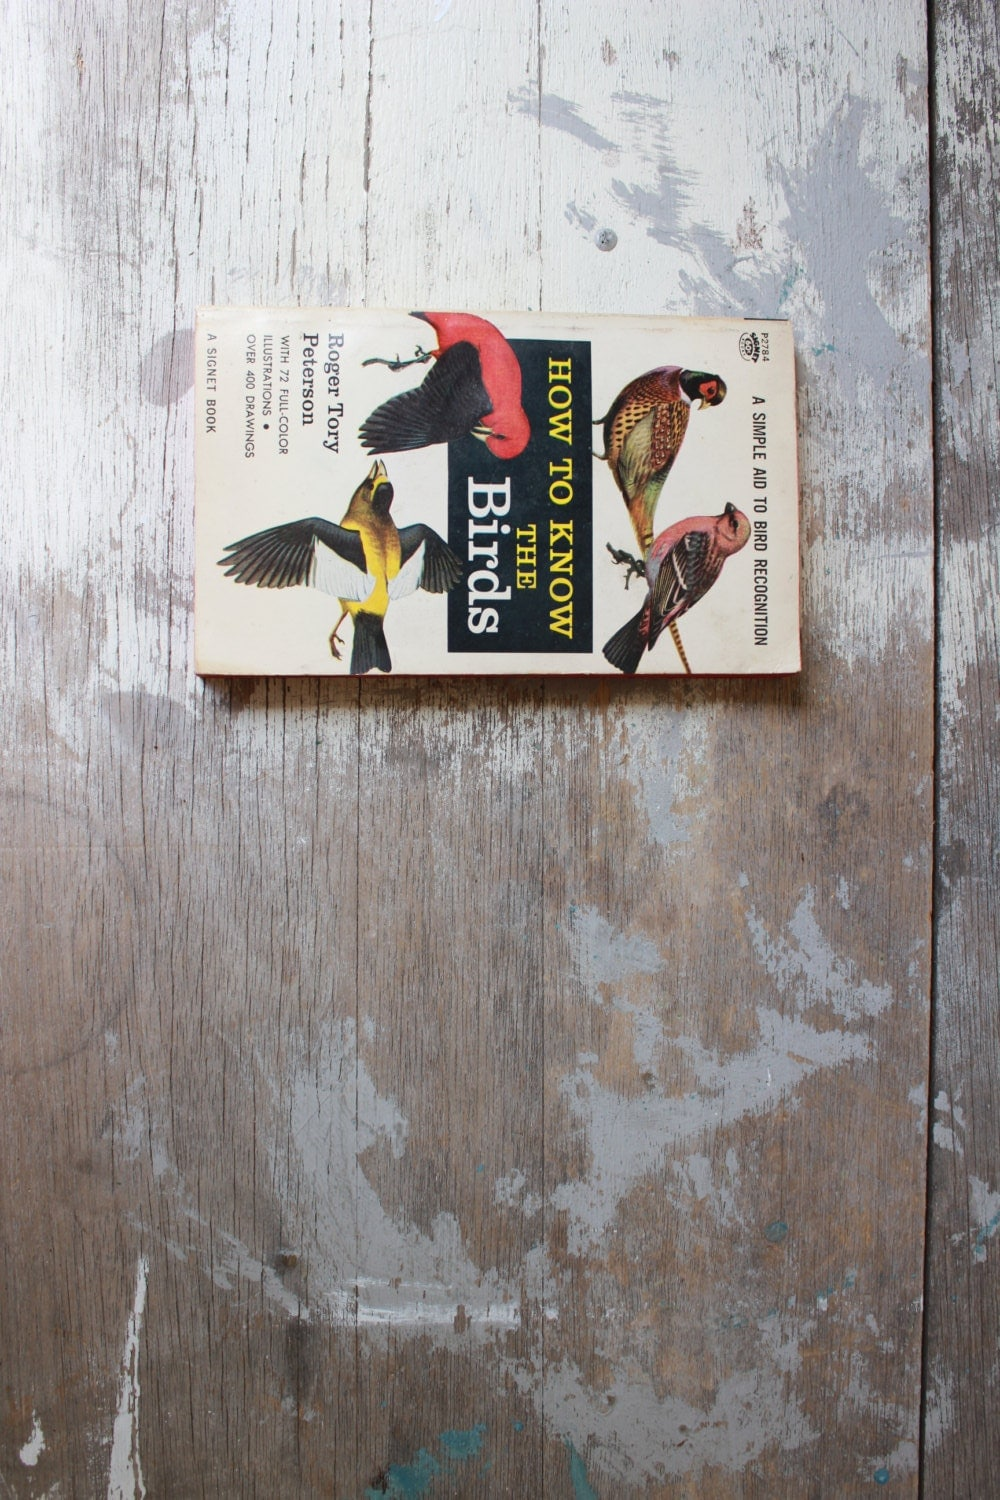 vintage bird watching book - experimentalvintage